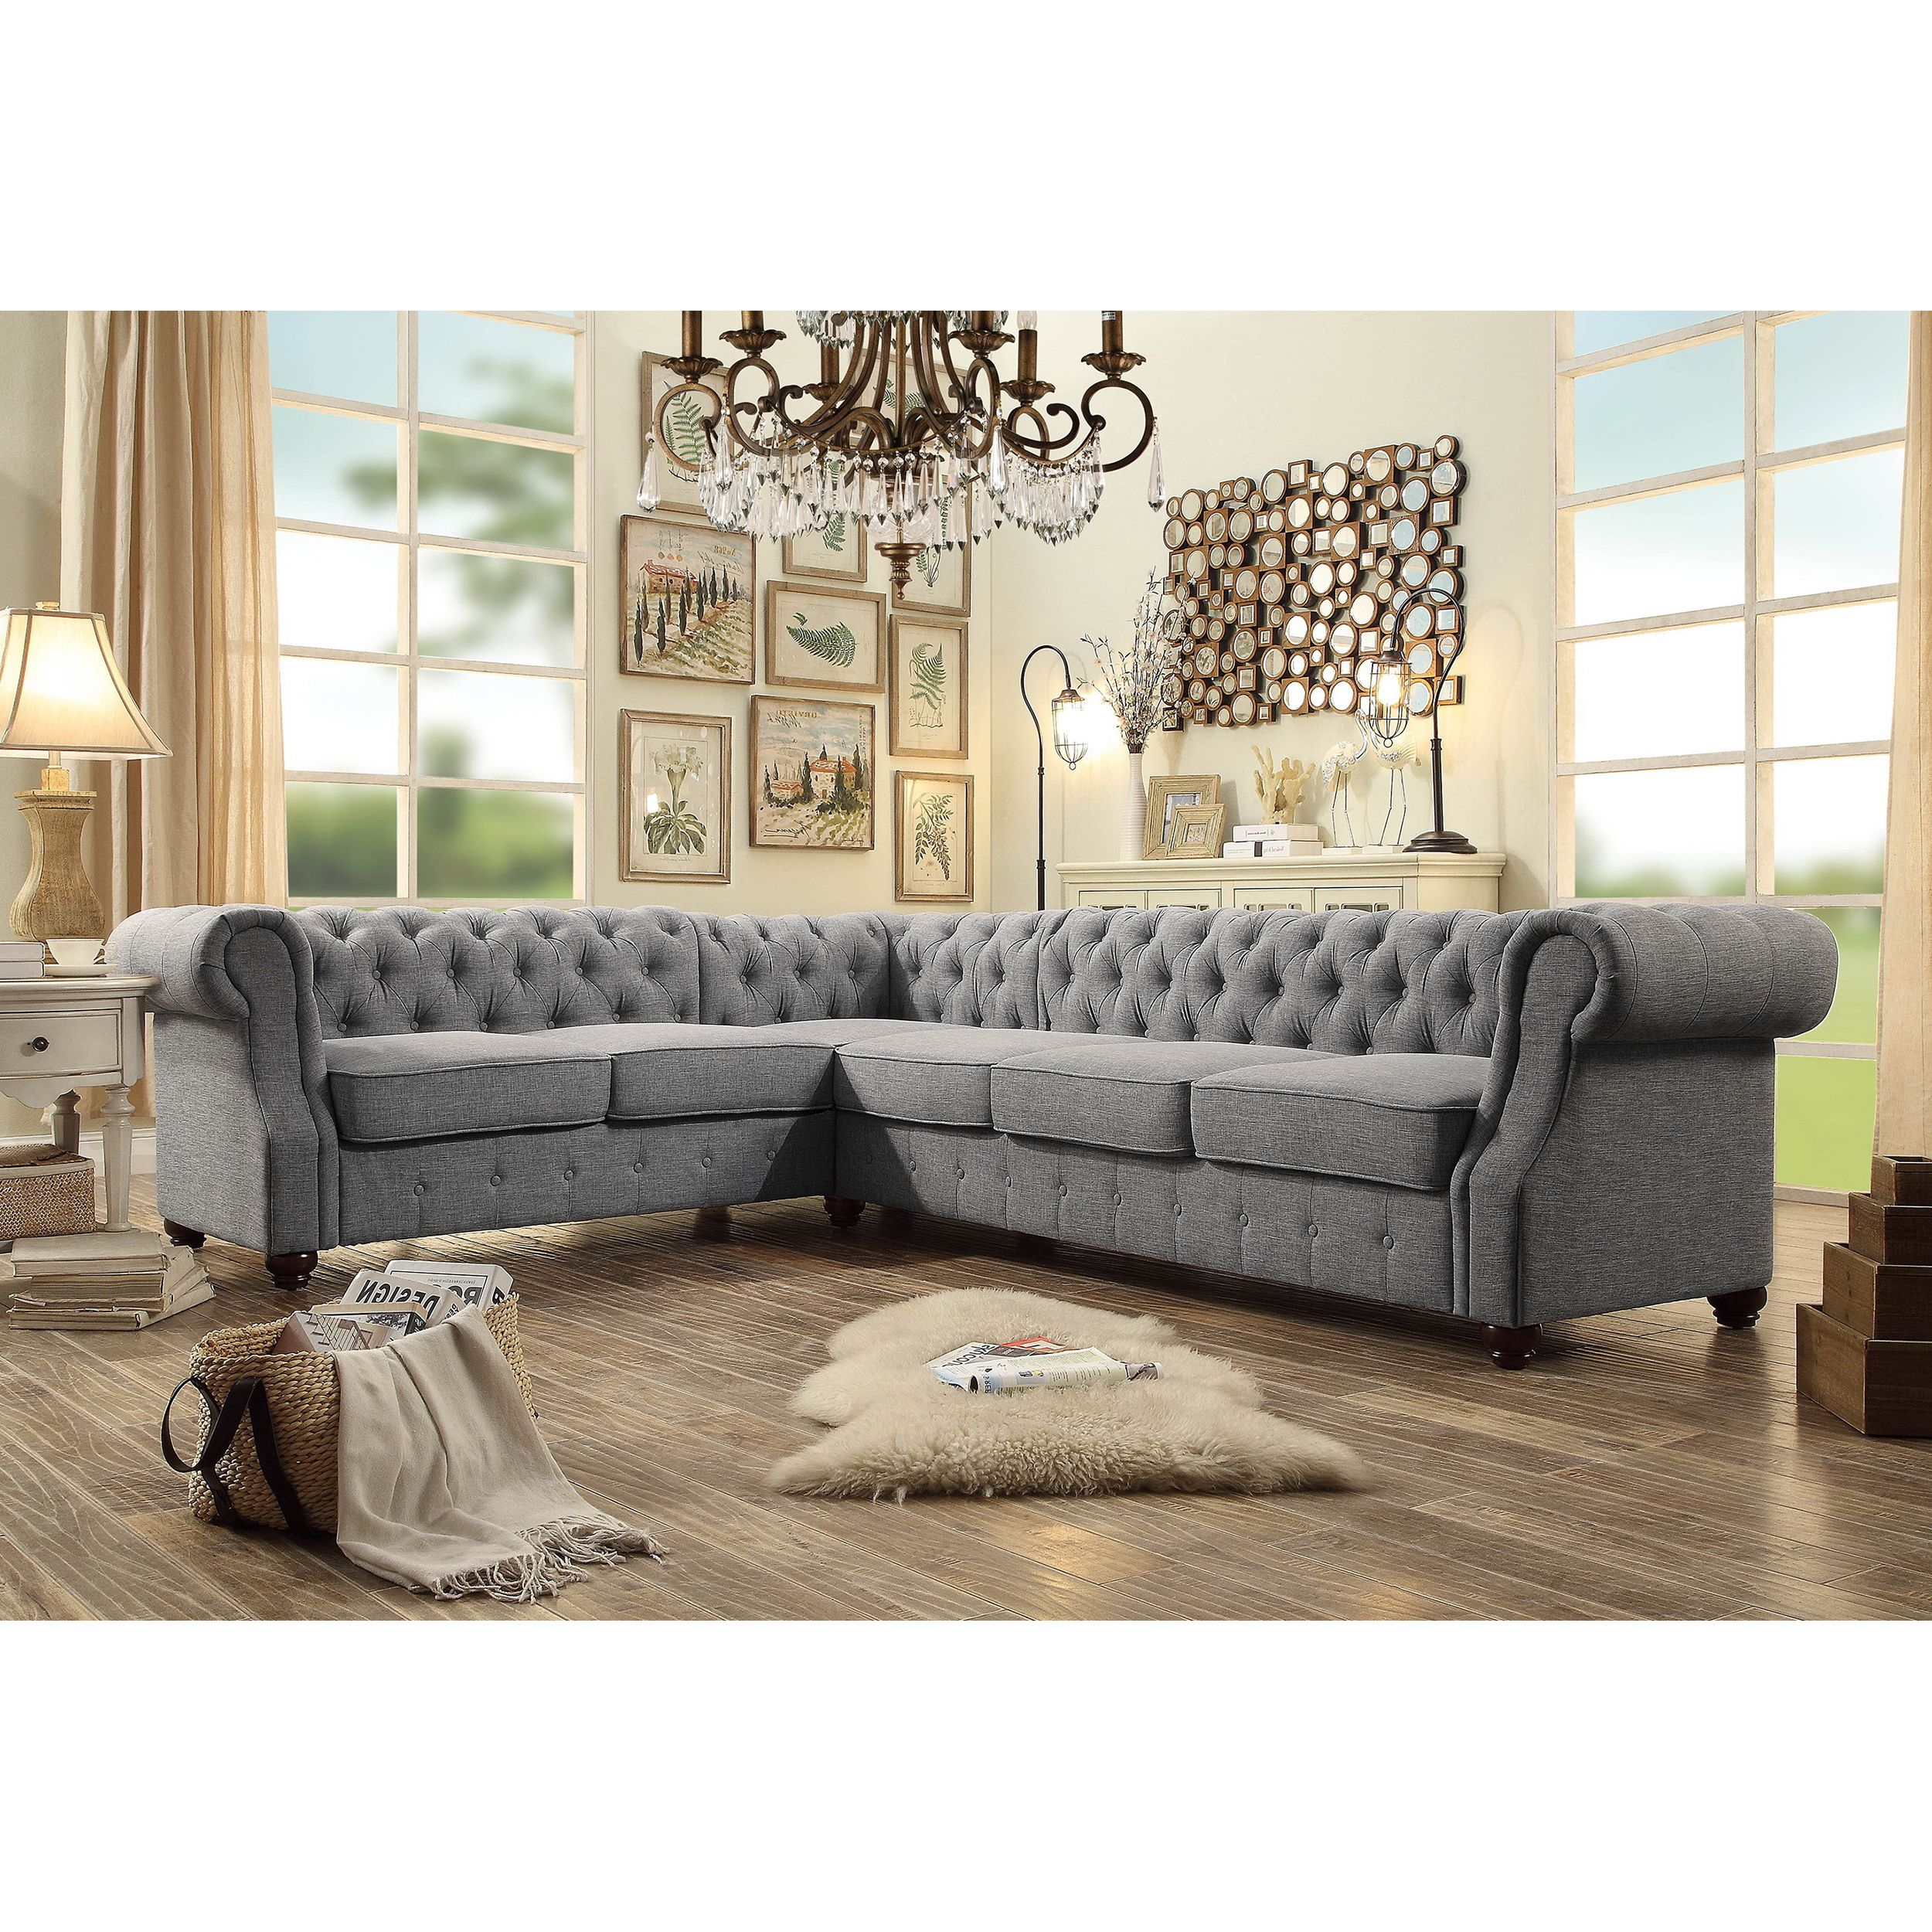 Furniture Cool Cheap Sectional For Elegant Living Room: Section Off Your Living Area With This Elegant Tufted